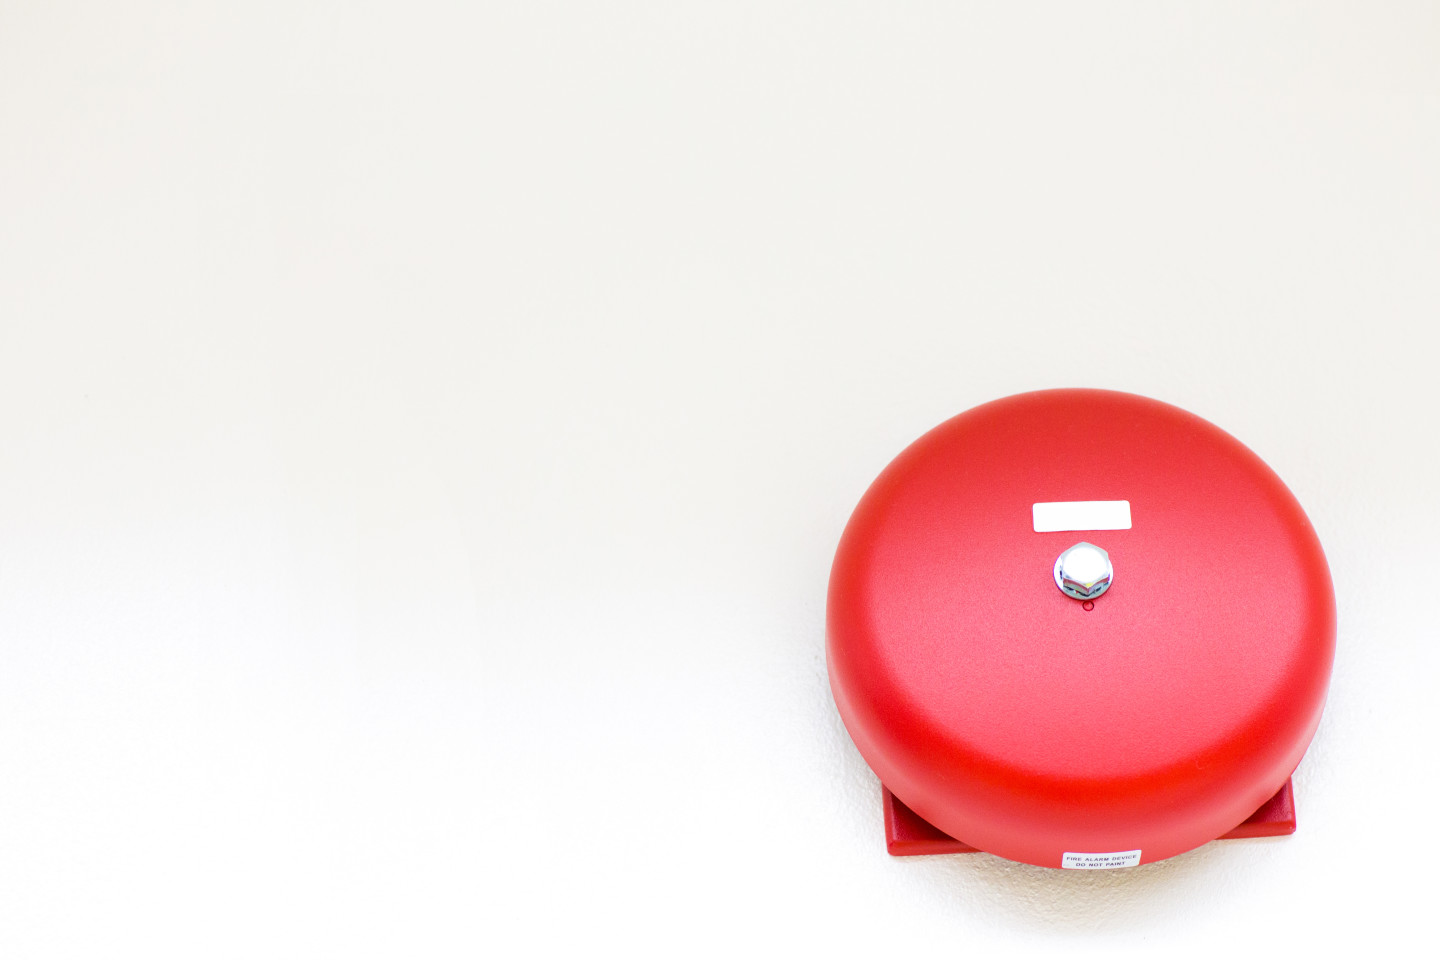 A red fire alarm.